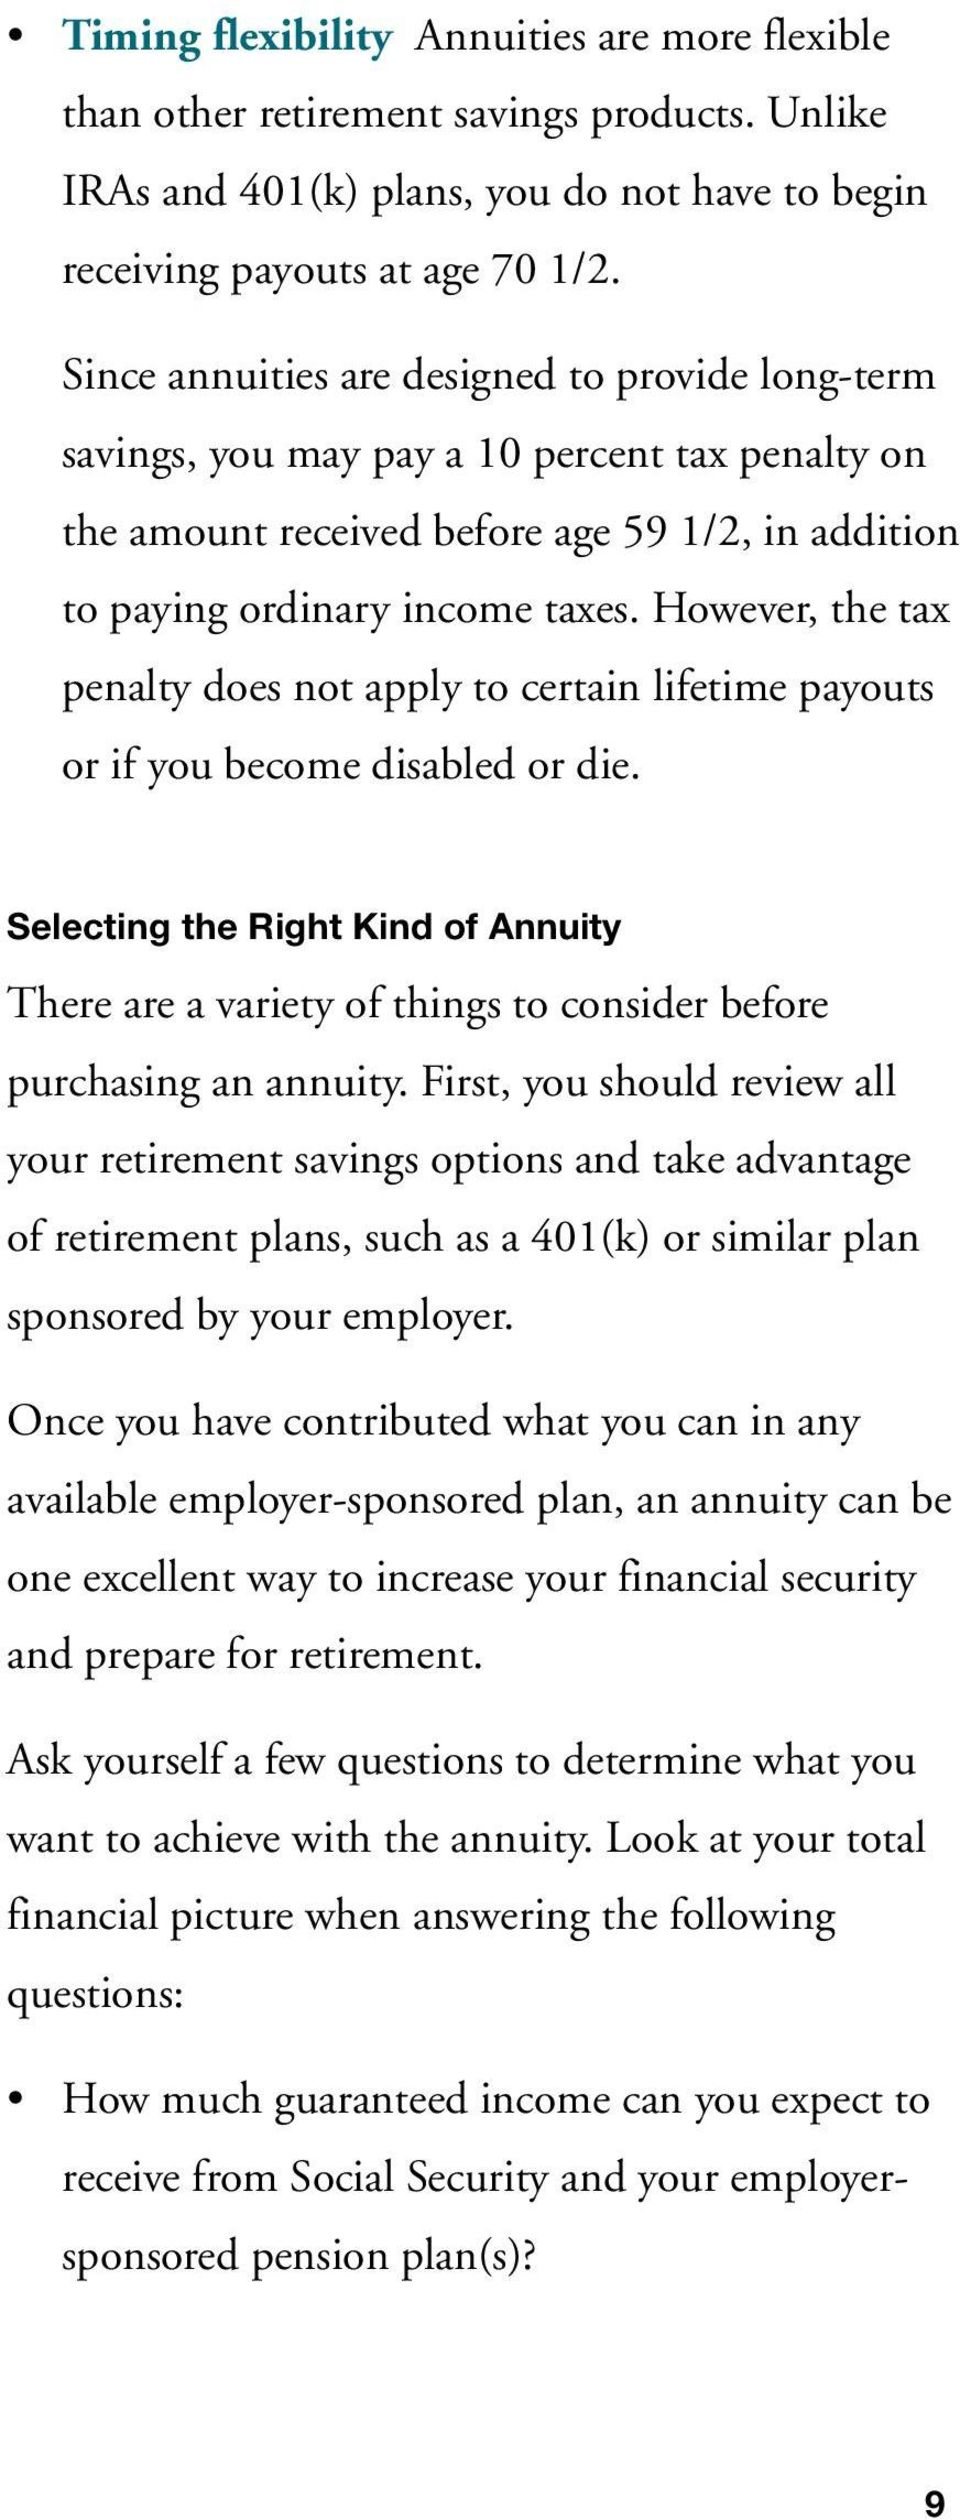 However, the tax penalty does not apply to certain lifetime payouts or if you become disabled or die.